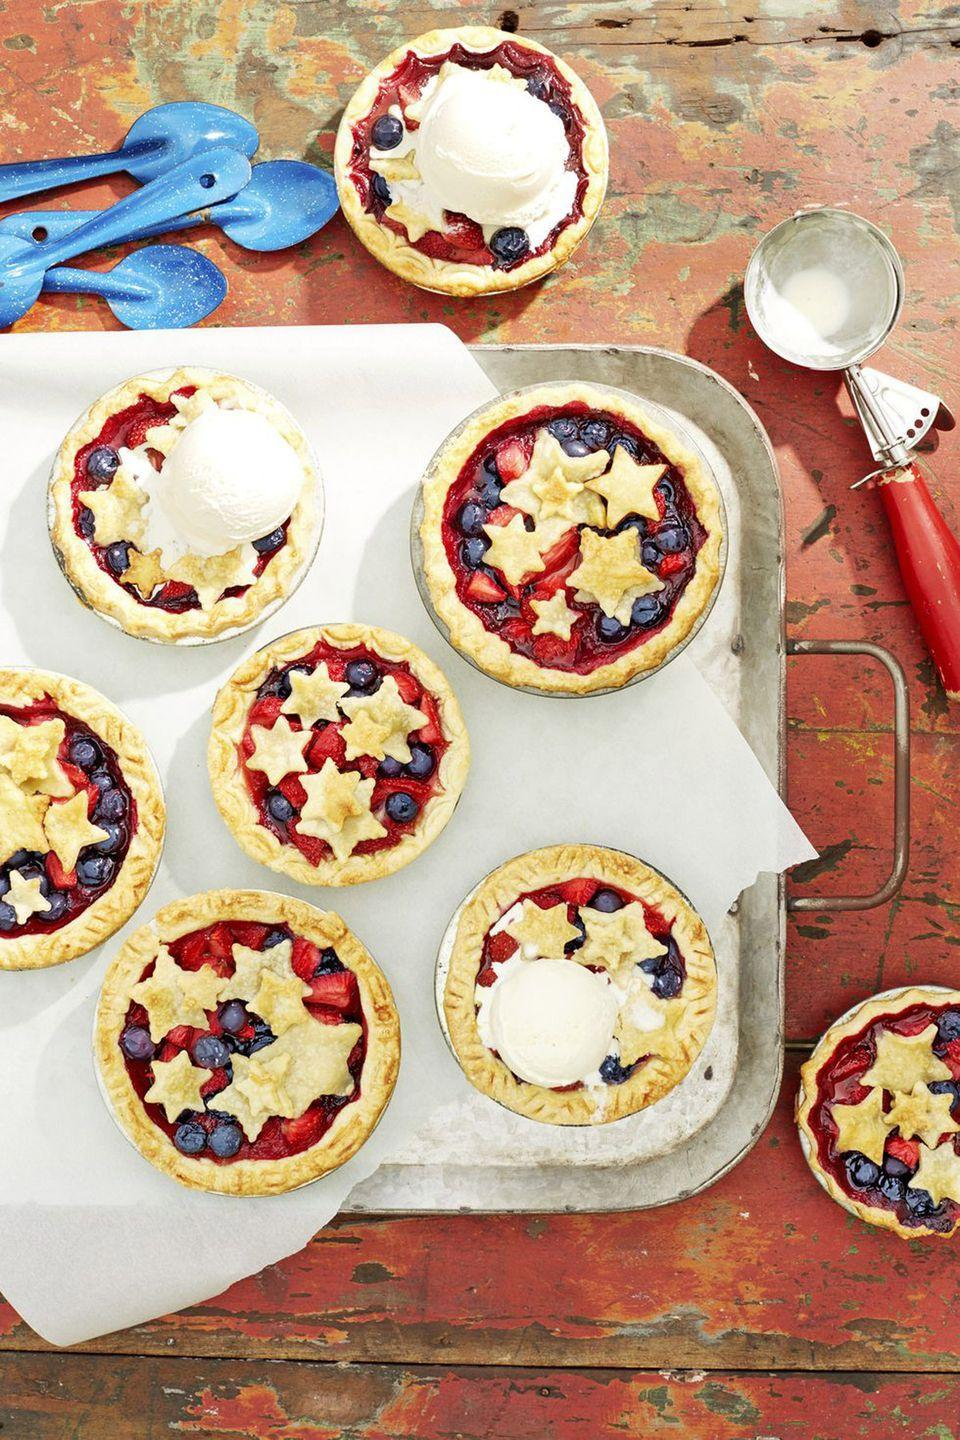 """<p>Top these tiny desserts—filled with raspberries, blueberries, and strawberries—with a large scoop of <a href=""""https://www.countryliving.com/food-drinks/g952/easy-homemade-ice-cream-0610/"""" rel=""""nofollow noopener"""" target=""""_blank"""" data-ylk=""""slk:vanilla ice cream"""" class=""""link rapid-noclick-resp"""">vanilla ice cream</a>.</p><p><strong><a href=""""https://www.countryliving.com/food-drinks/a21348015/mini-stars-berry-pies-recipe/"""" rel=""""nofollow noopener"""" target=""""_blank"""" data-ylk=""""slk:Get the recipe"""" class=""""link rapid-noclick-resp"""">Get the recipe</a></strong><strong>.</strong></p>"""